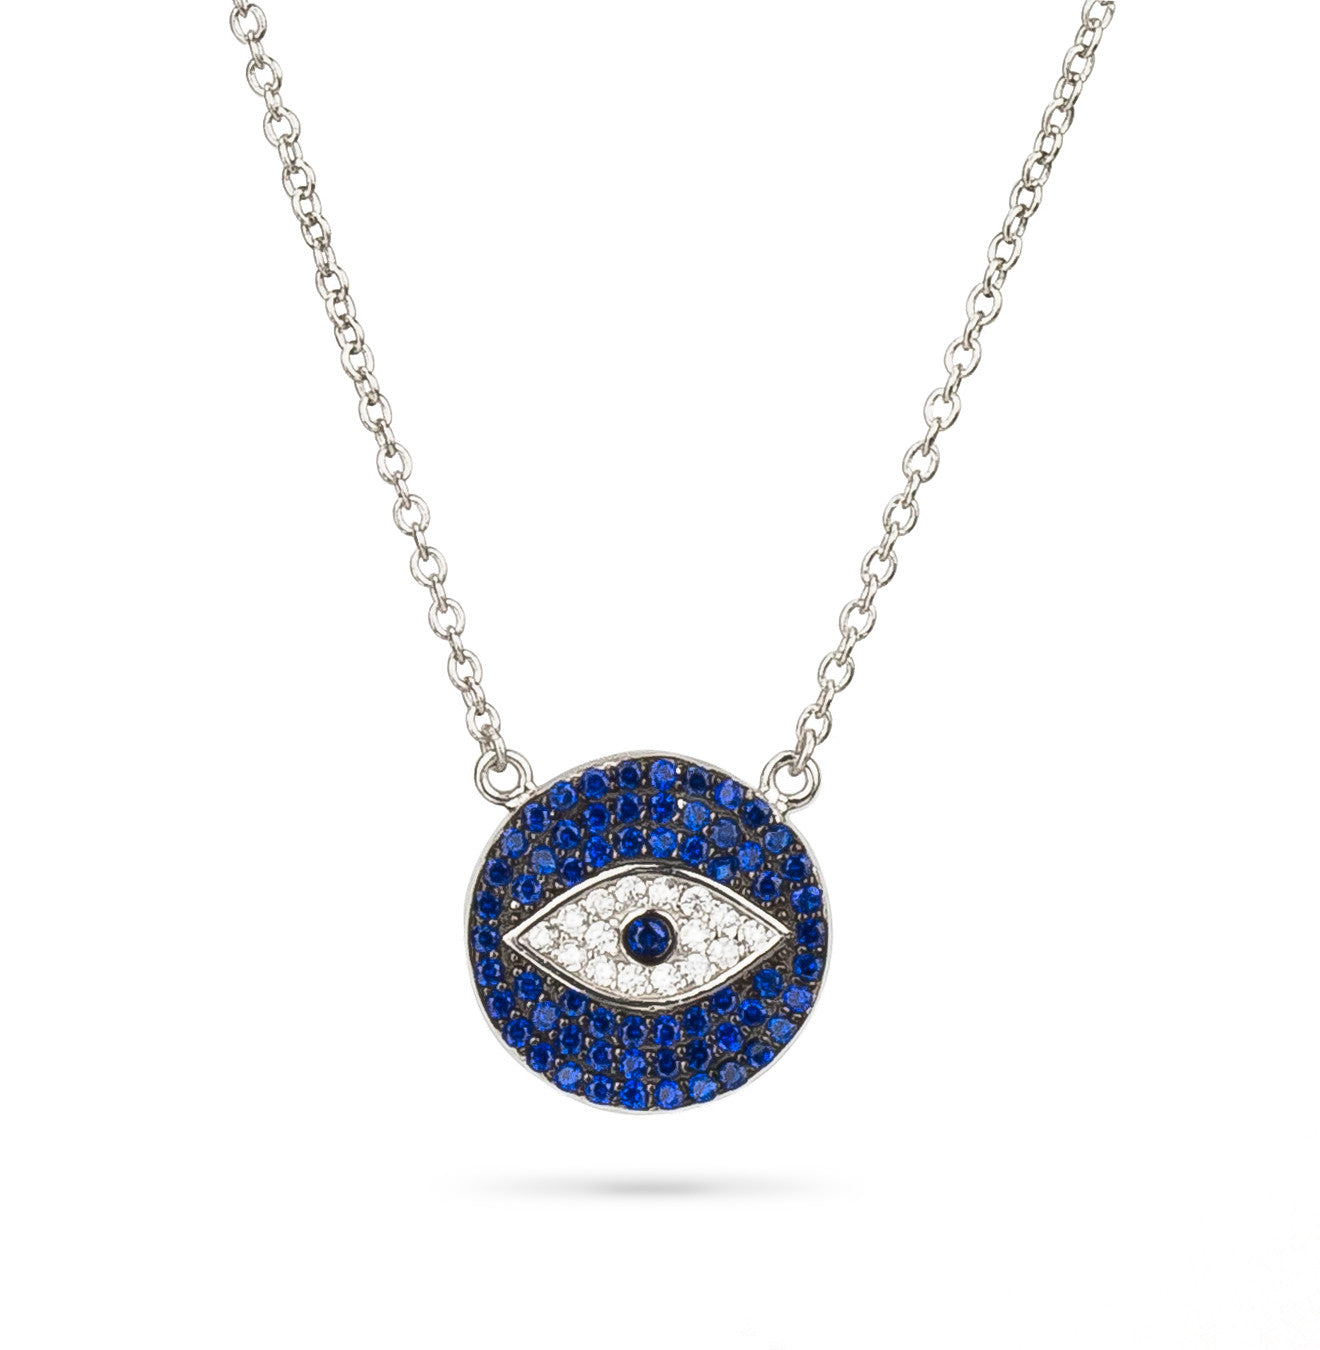 Evil Eye Pave Charm Necklace Silver 925